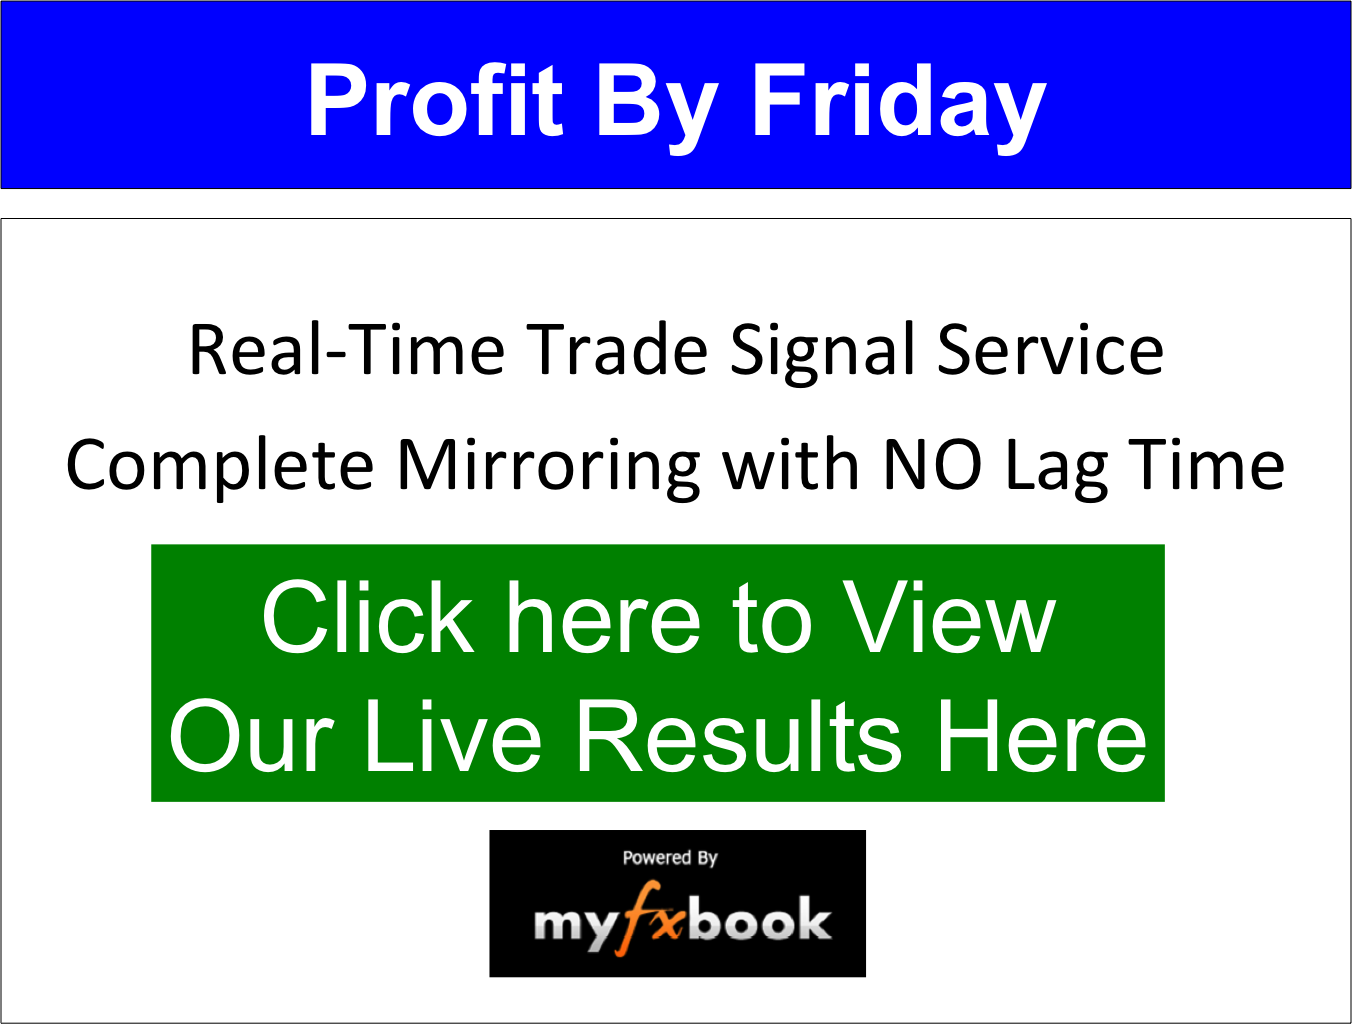 Profit By Friday